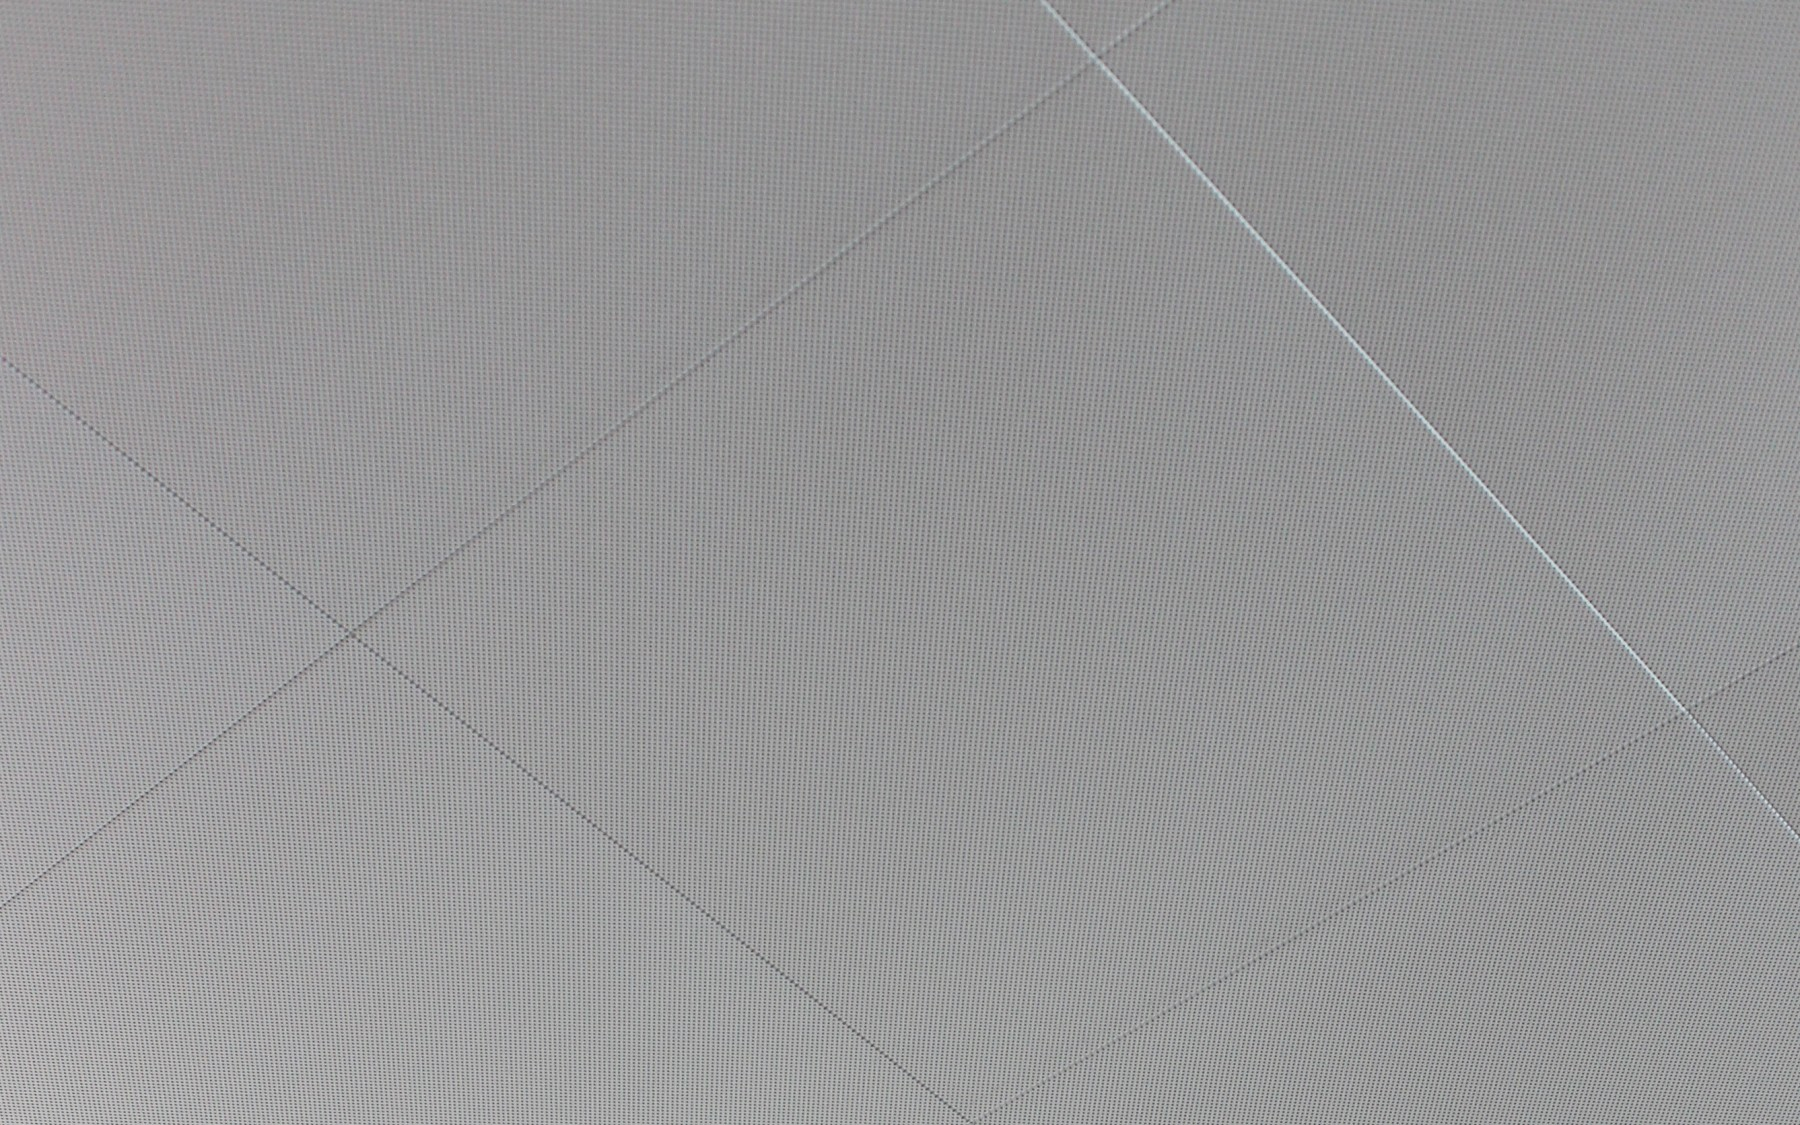 DAMPA tiles, sharp edge, perforation exceeding the edge of the tile.